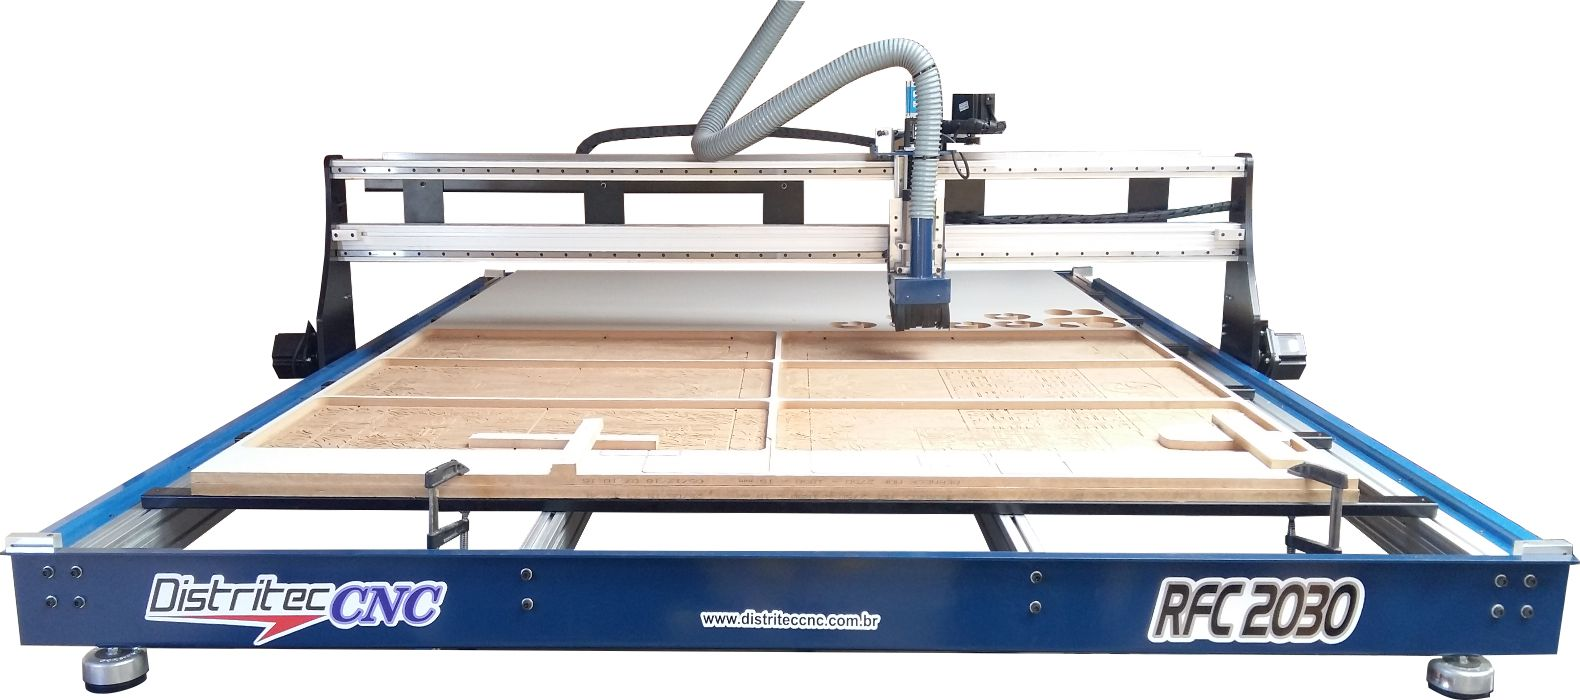 Router CNC RC2030 área útil de 2000x3000x100mm